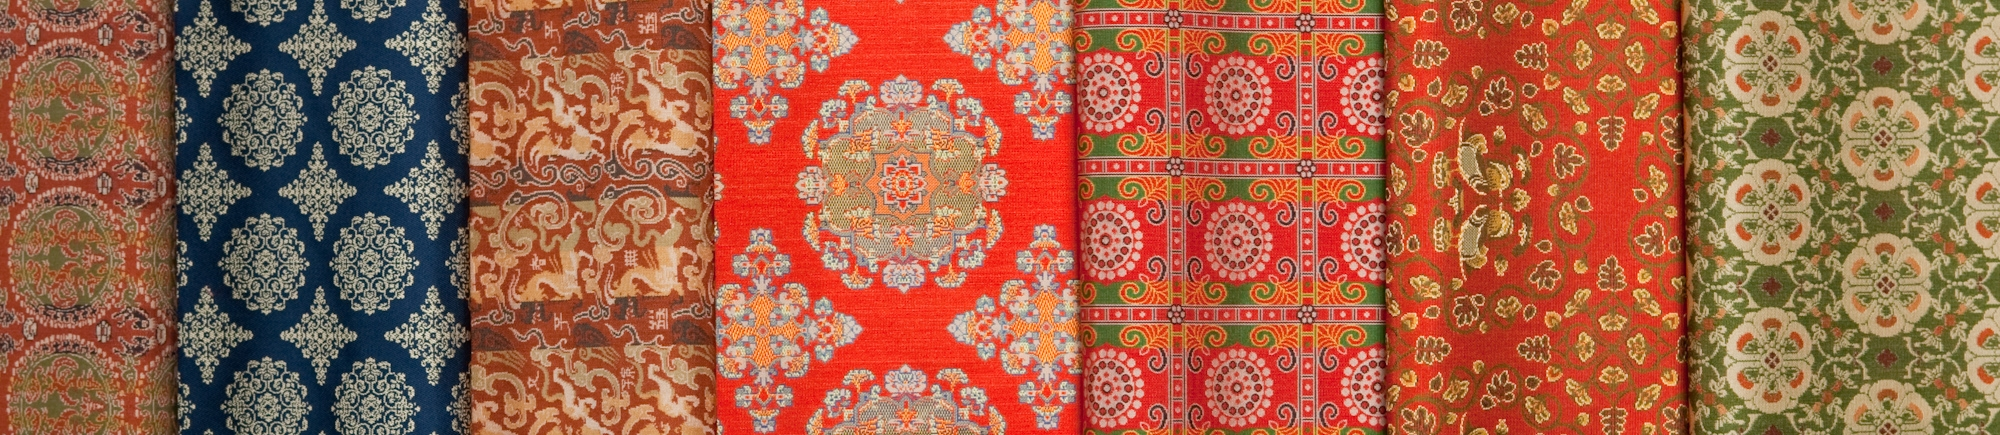 how to order things on silk road